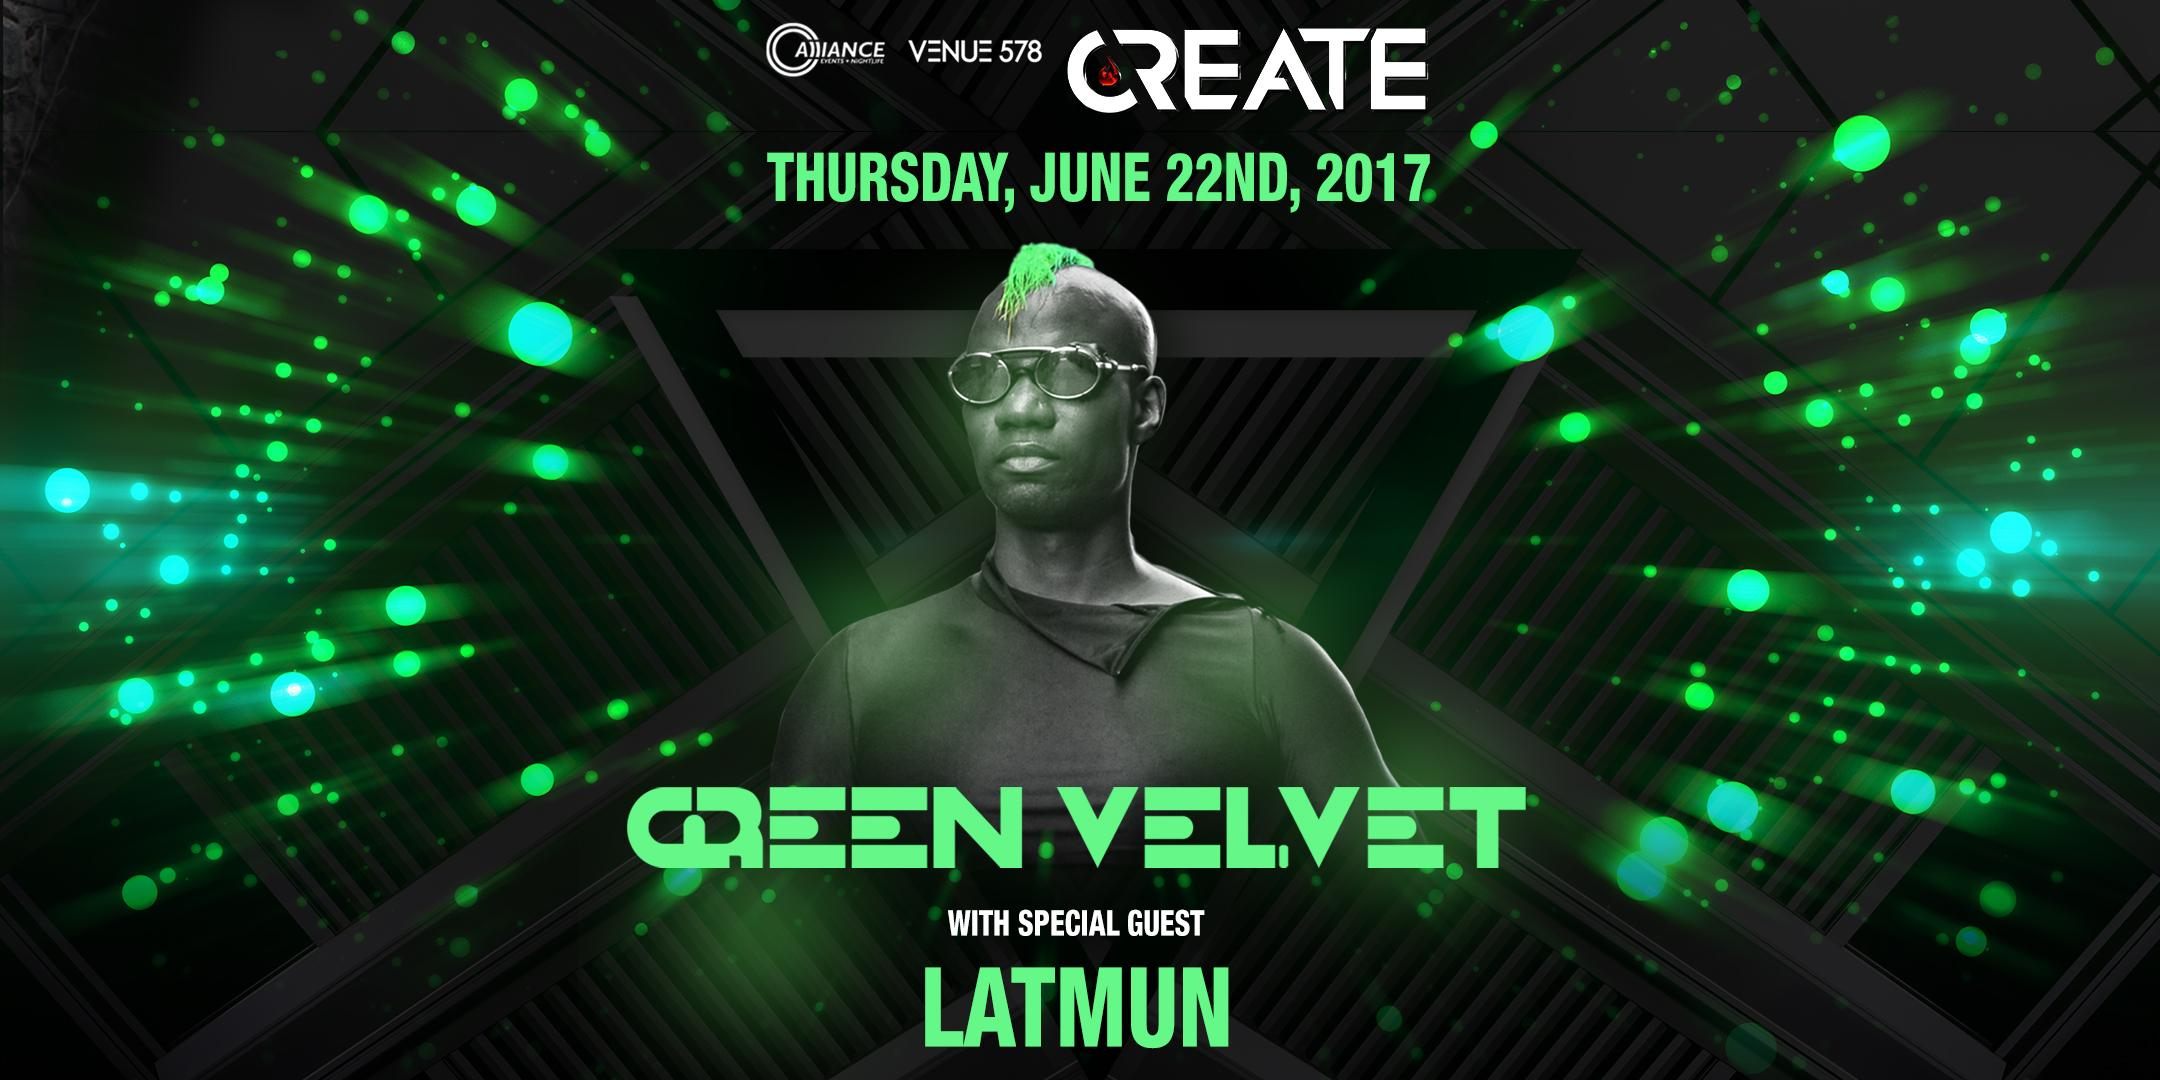 Create - Green Velvet & Latmun - Thursday 06.22.17